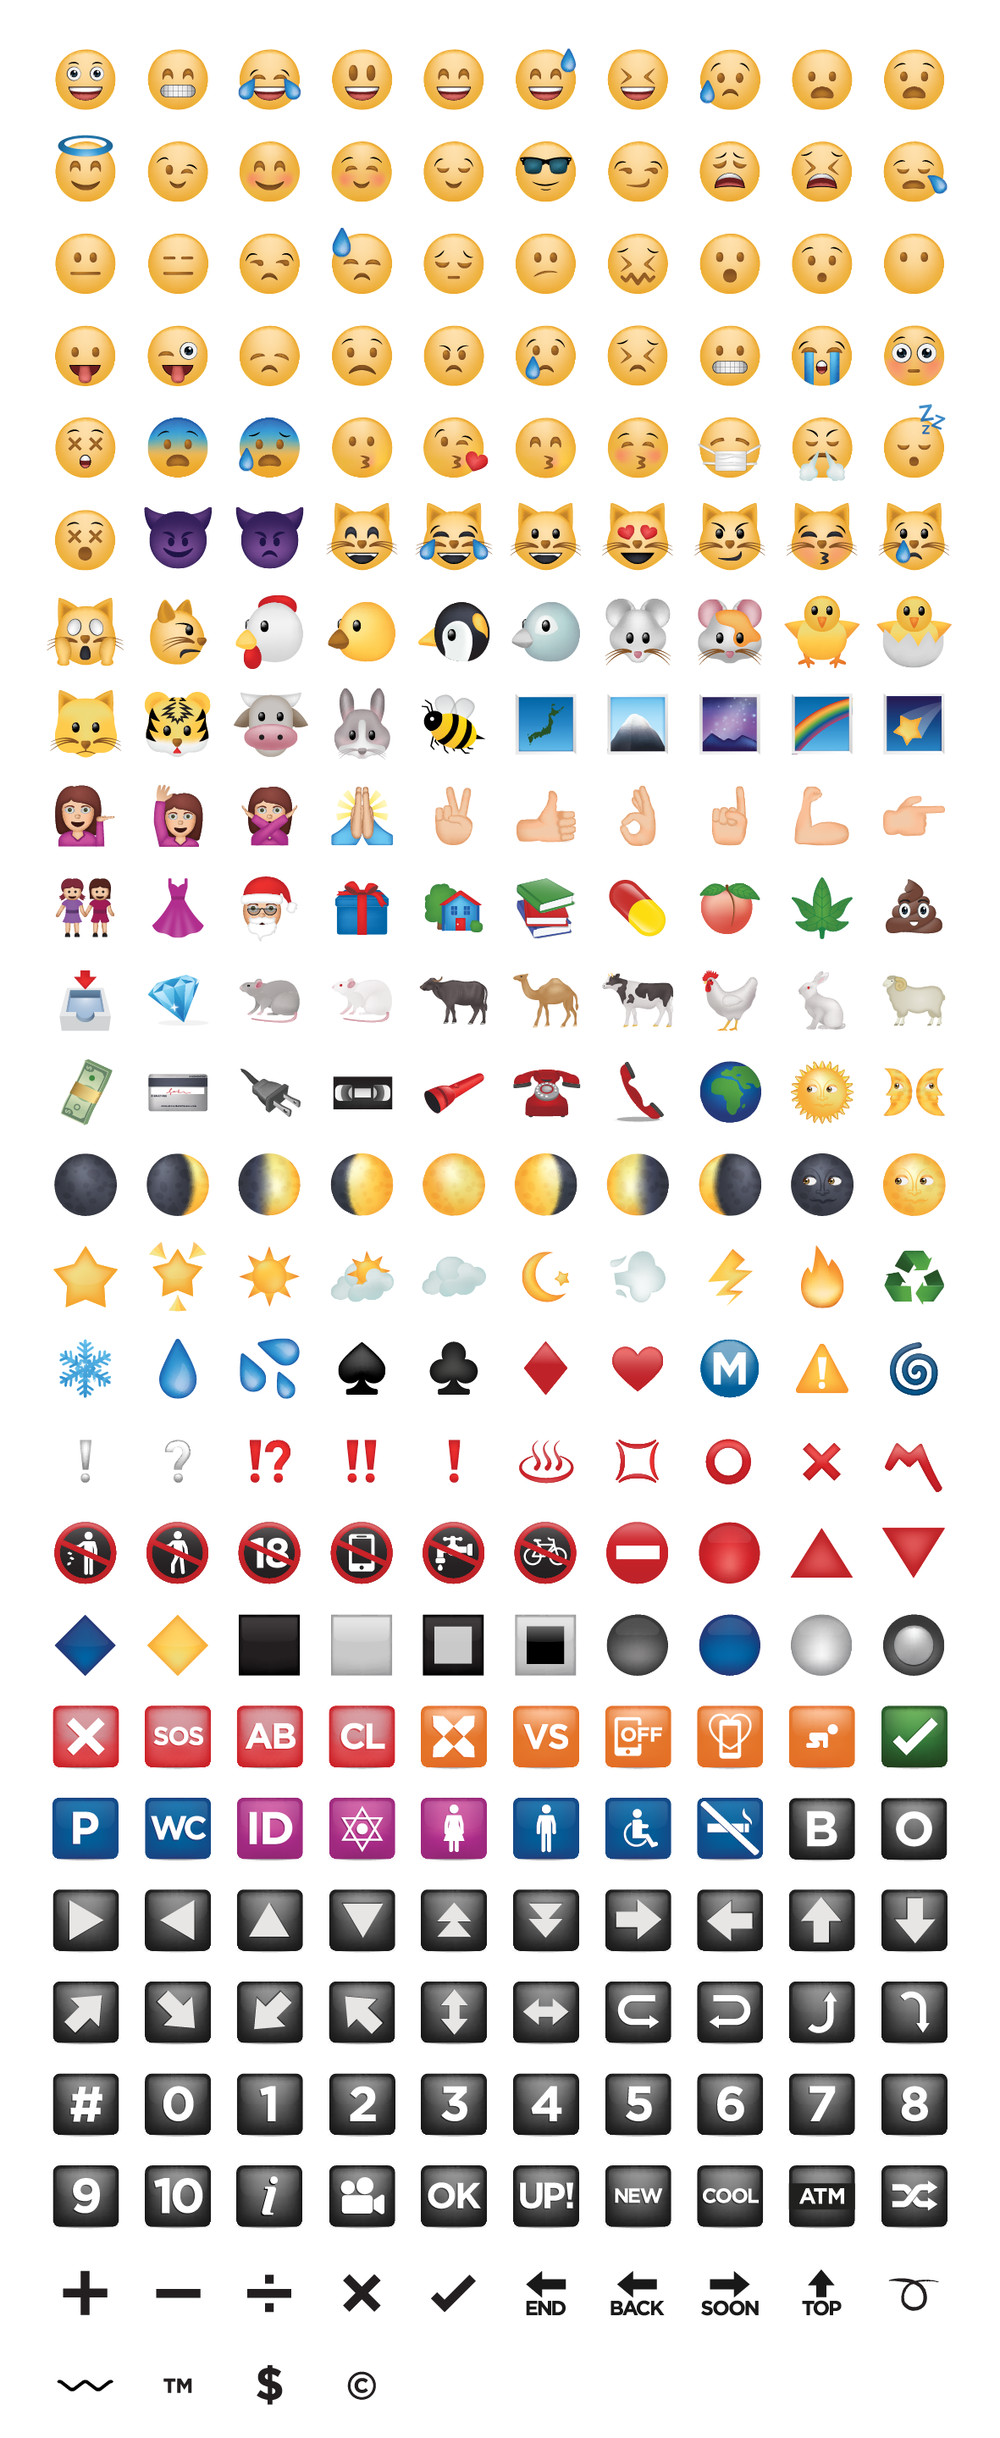 250+ custom emojis resembling iOS versions